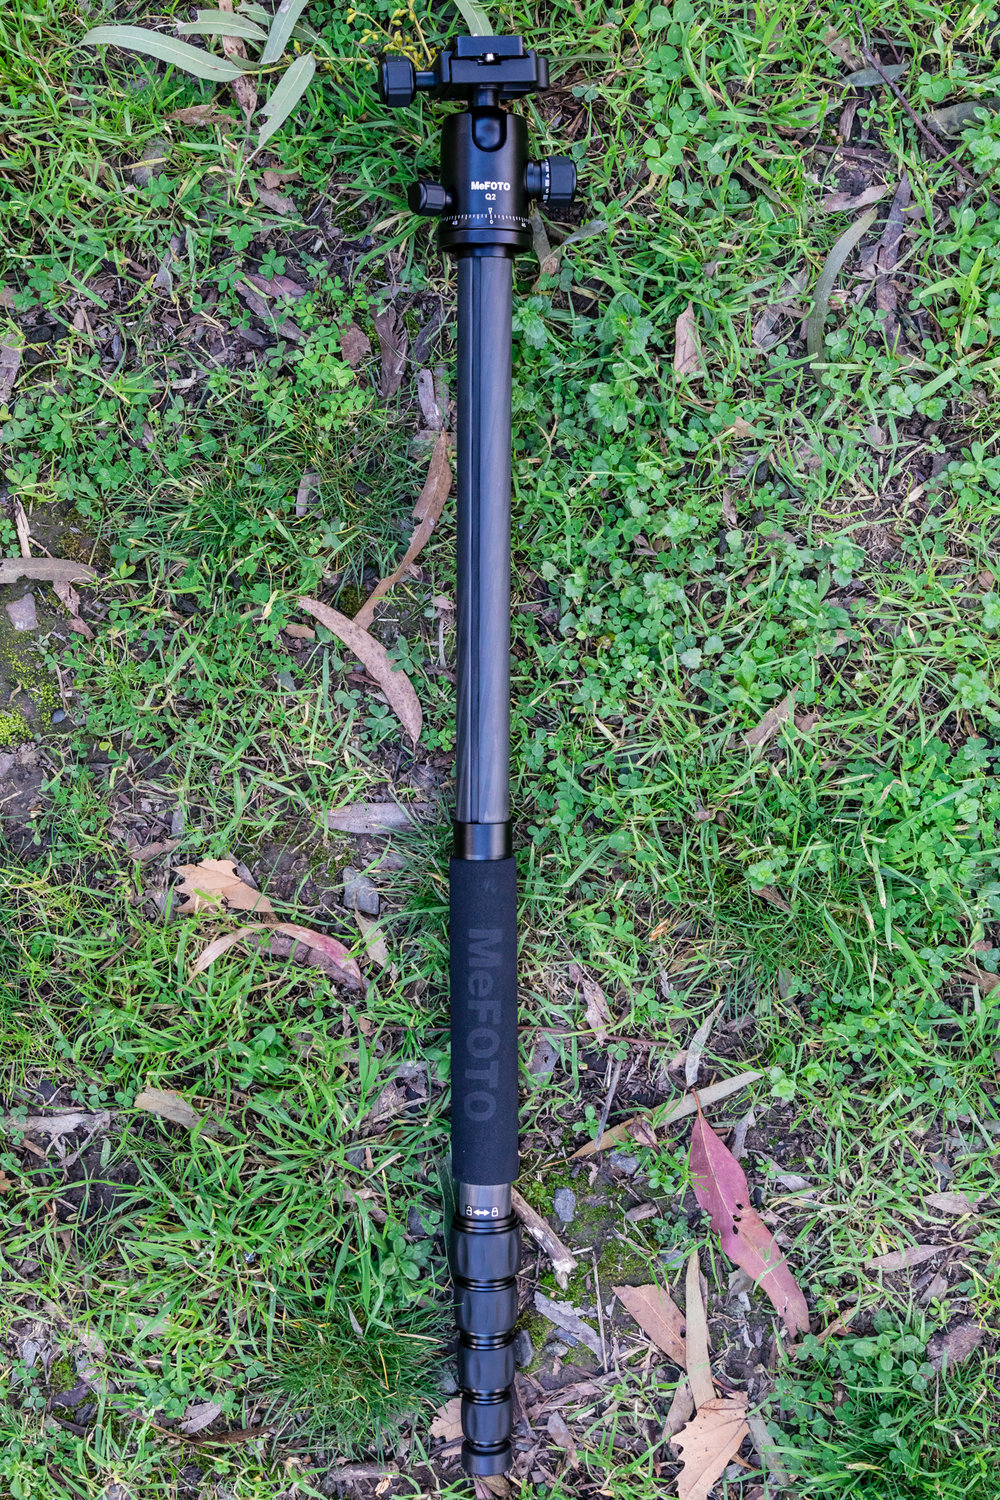 Globetrotter Monopod option